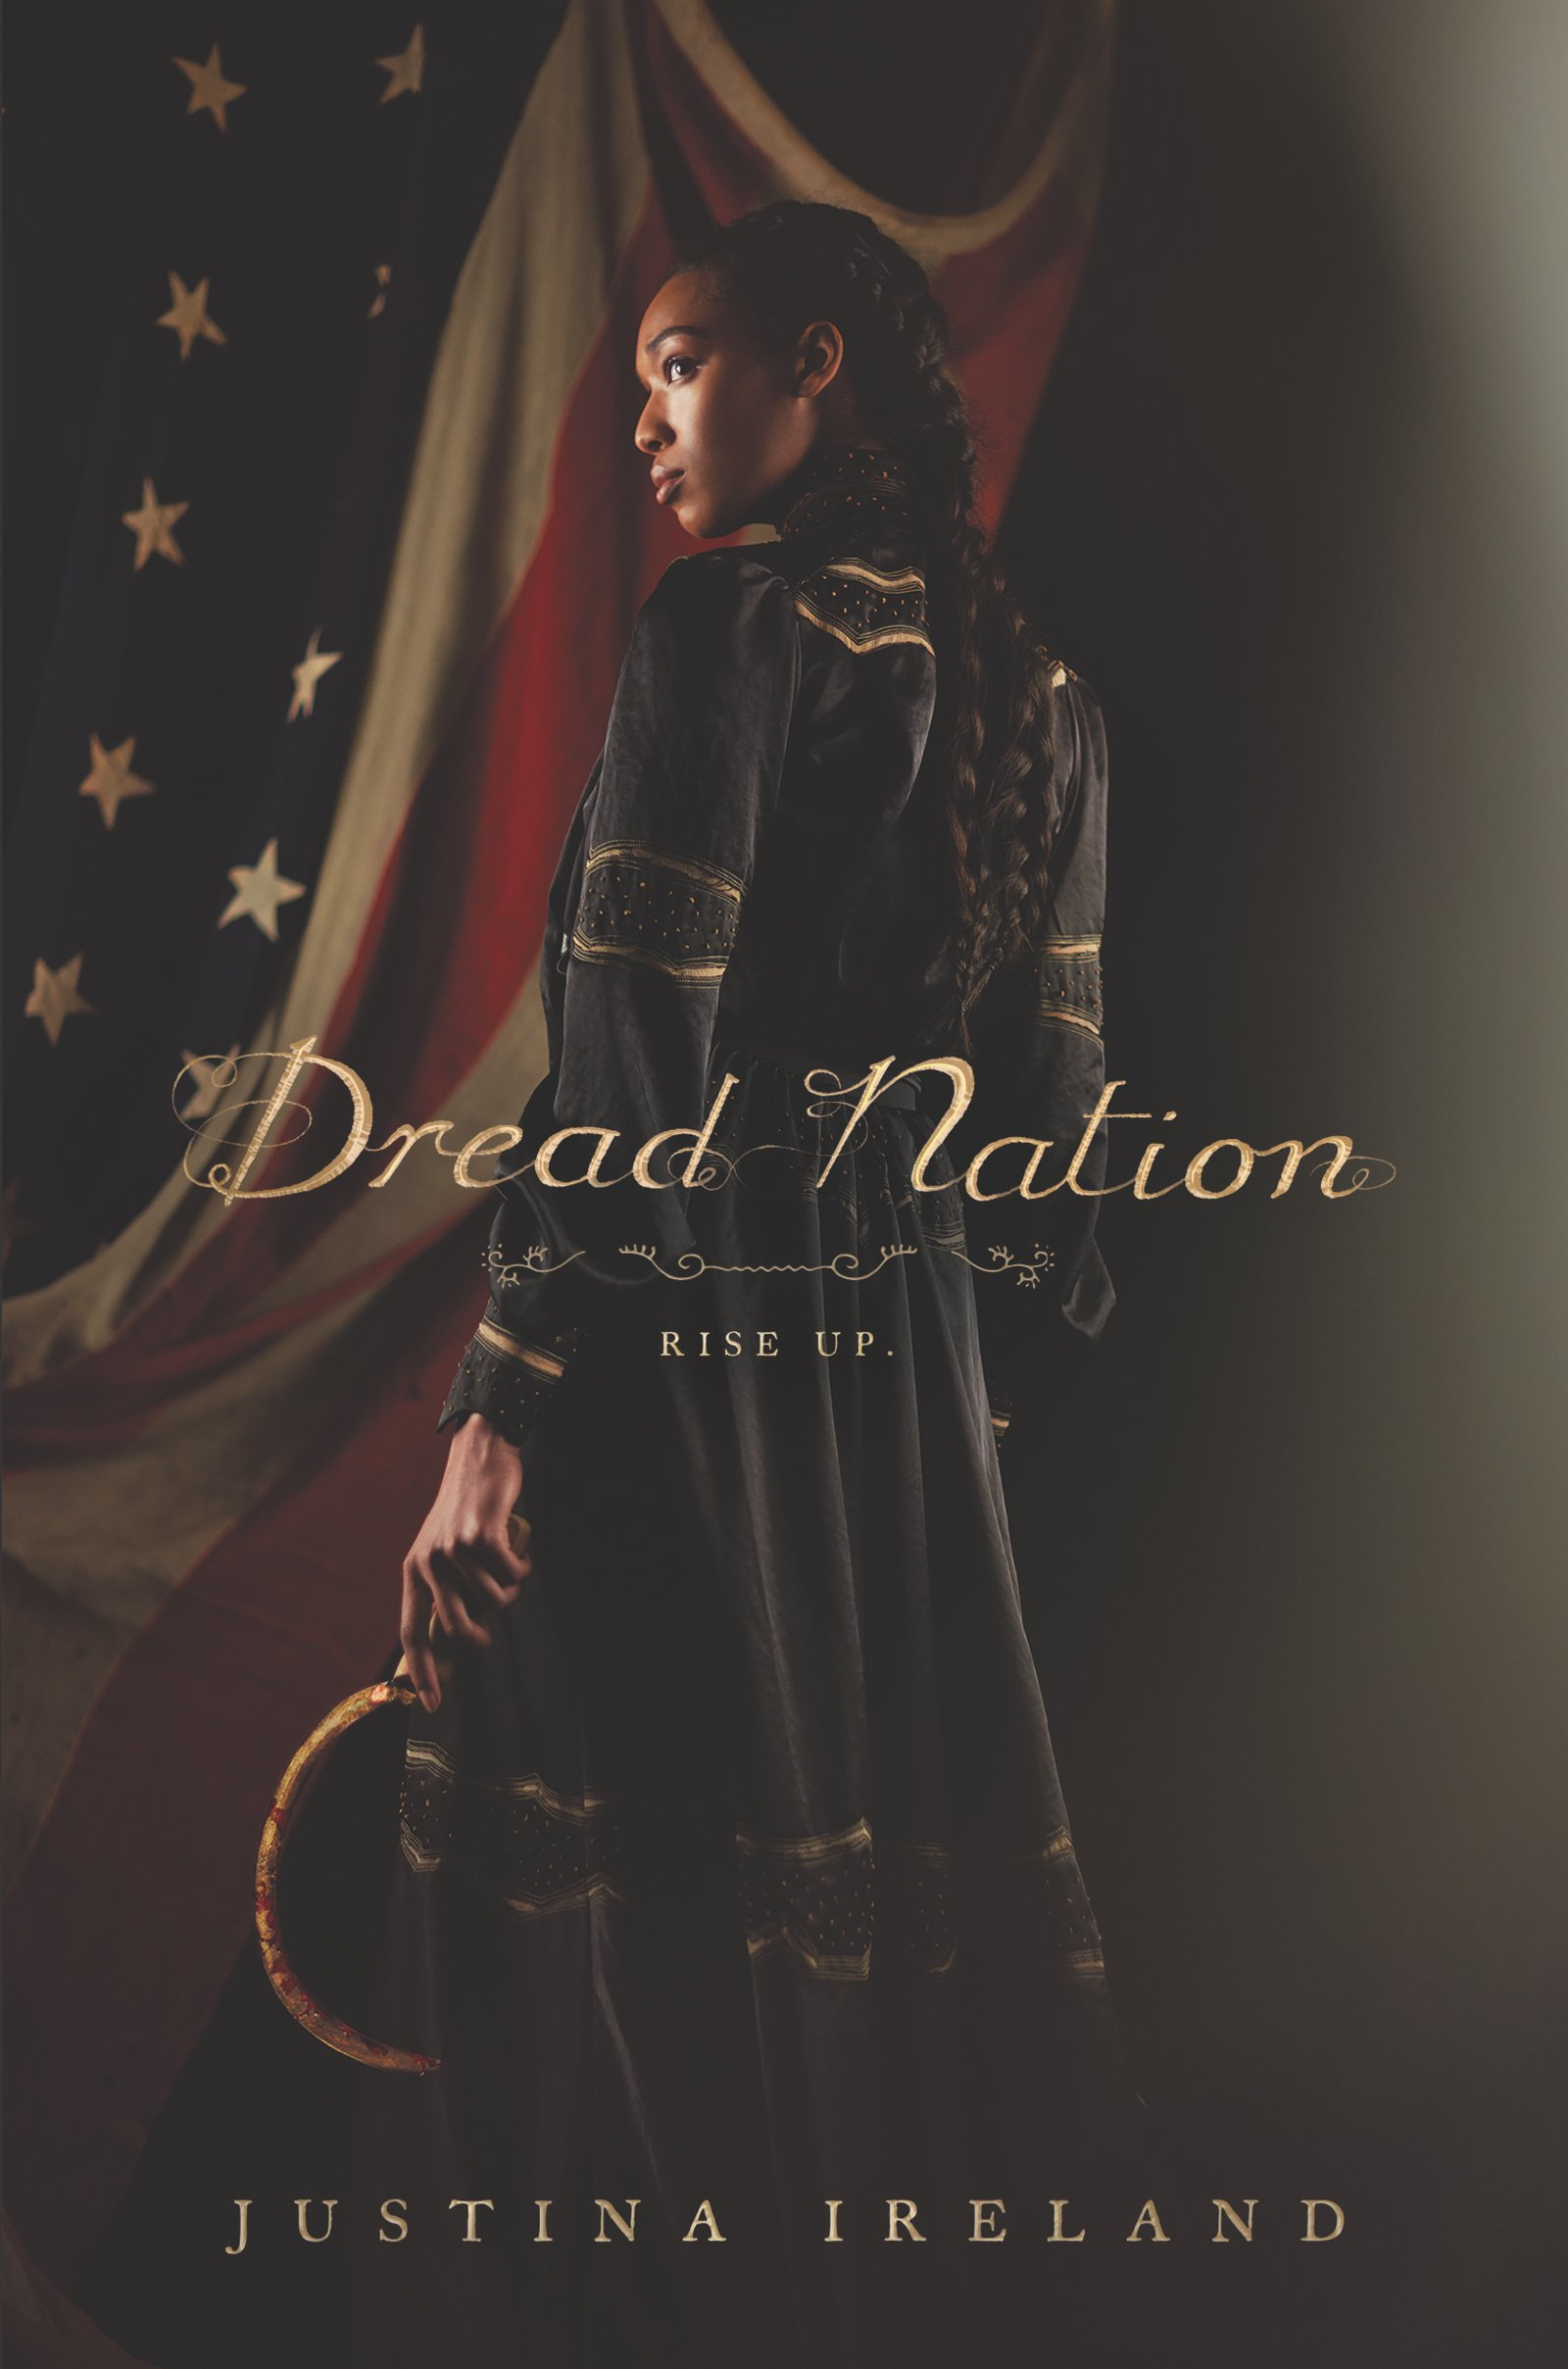 Amazon.com: Dread Nation (9780062570604): Ireland, Justina: Books